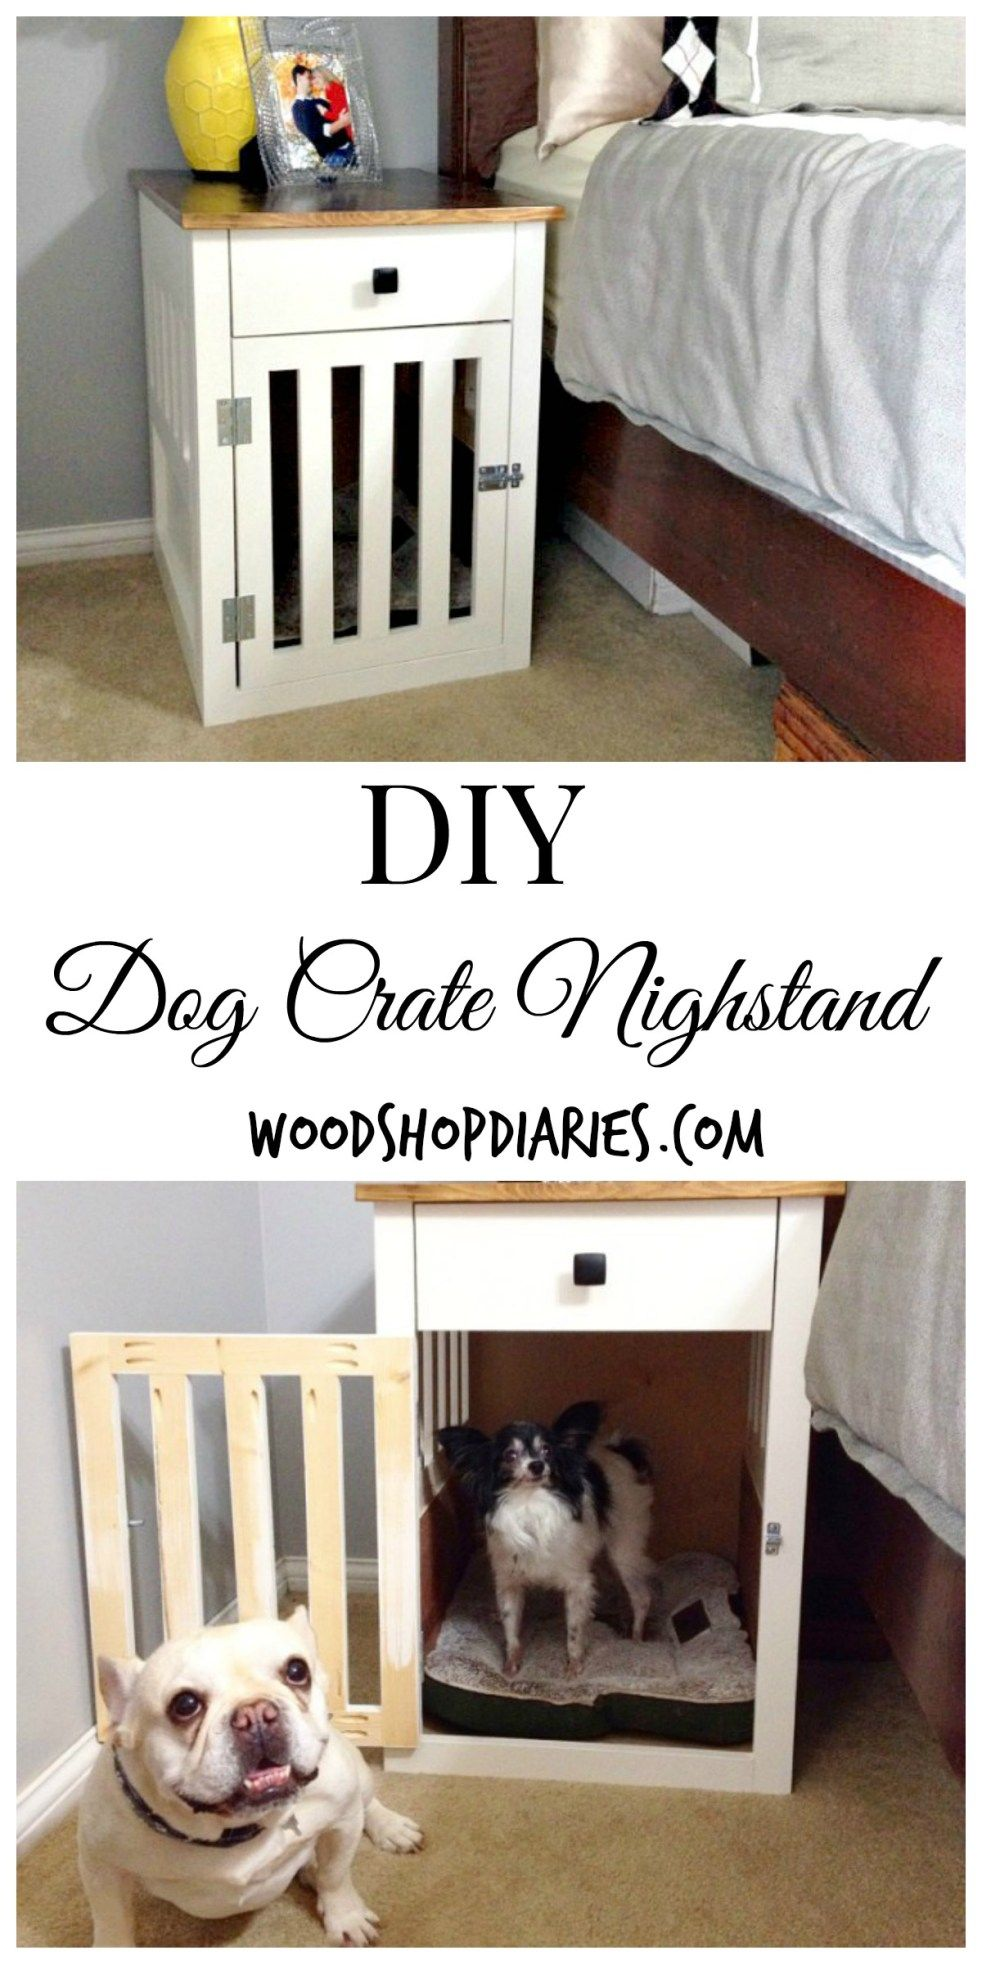 Going to the DogsDIY Dog Crate Nightstands Diy dog